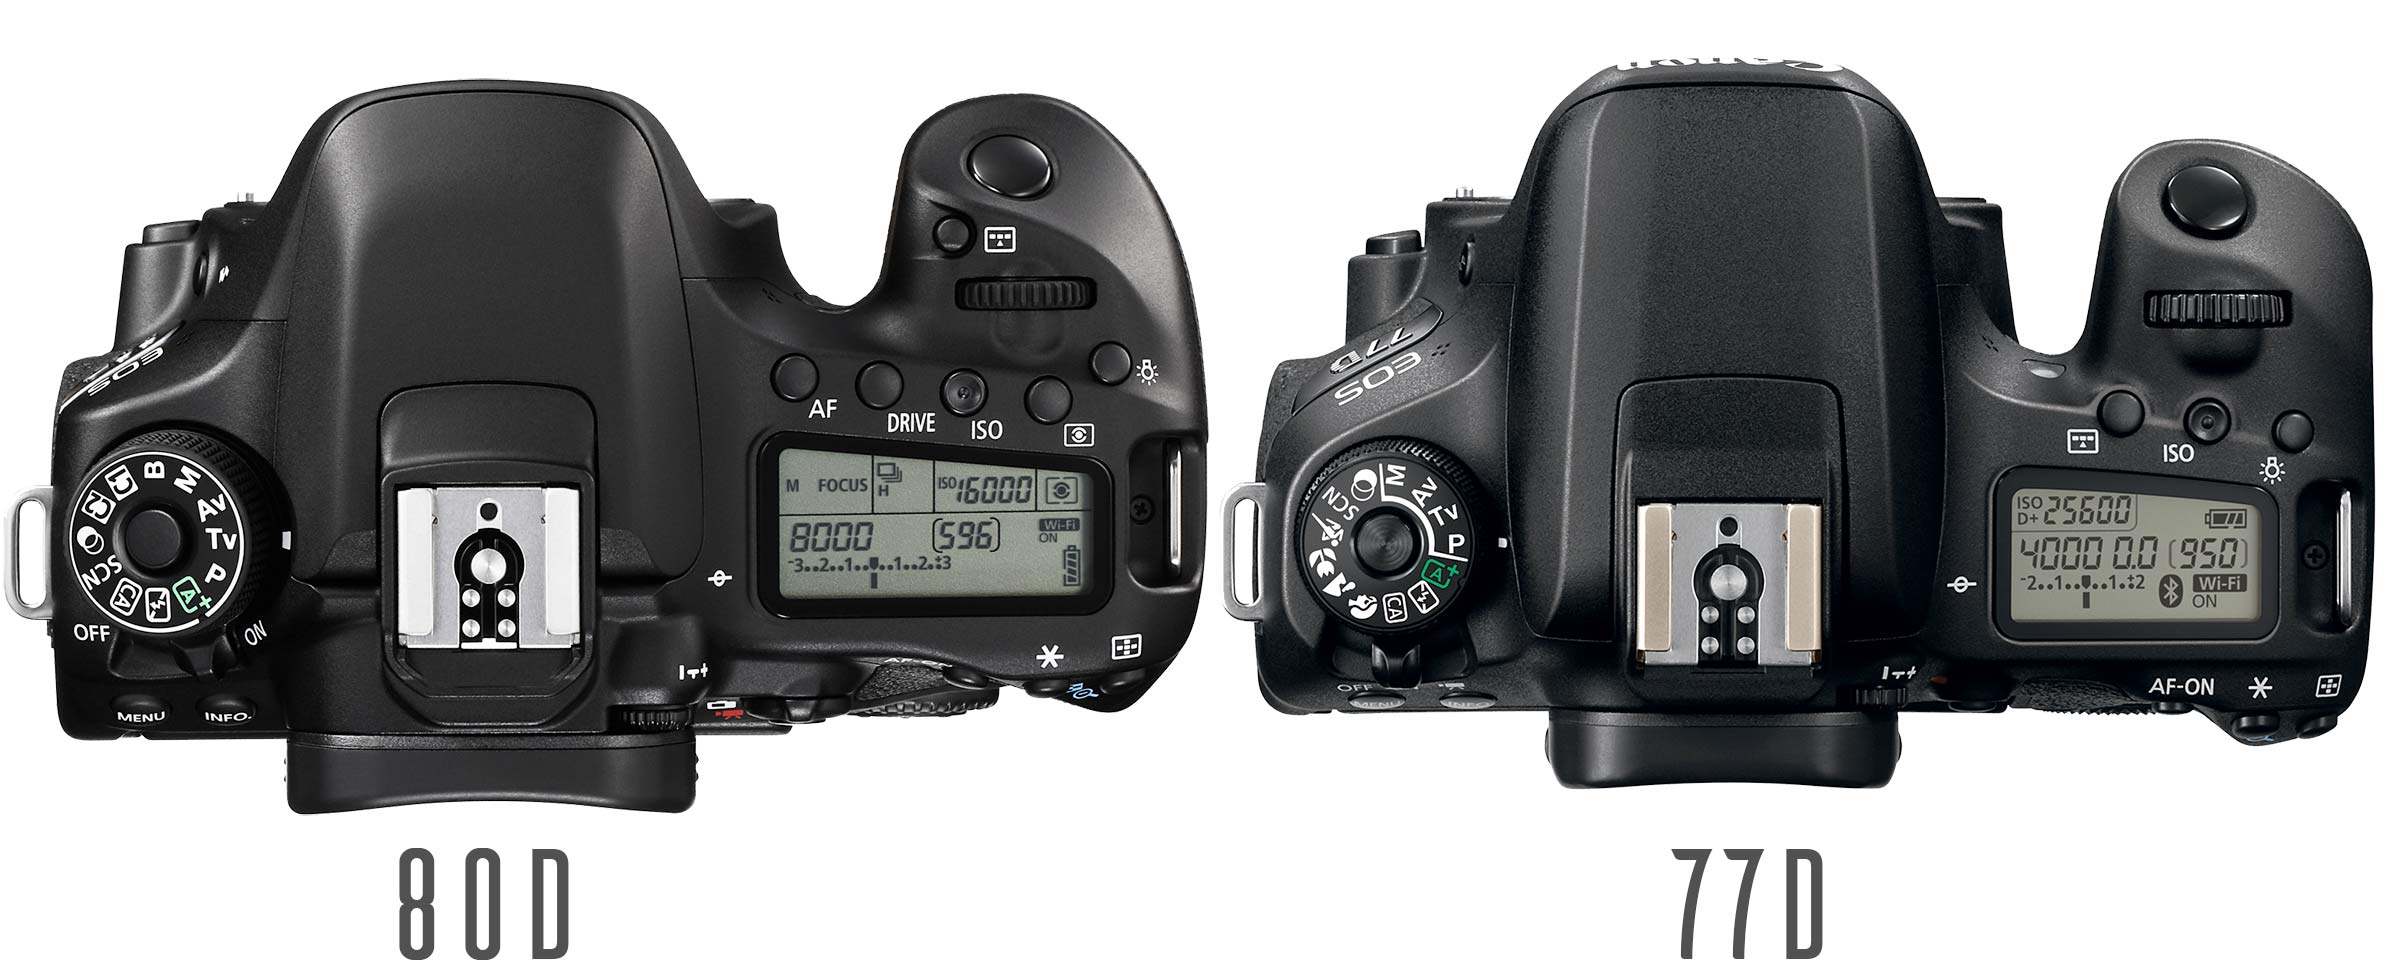 Canon 77D vs 80D: Which Should You Buy? – Light And Matter